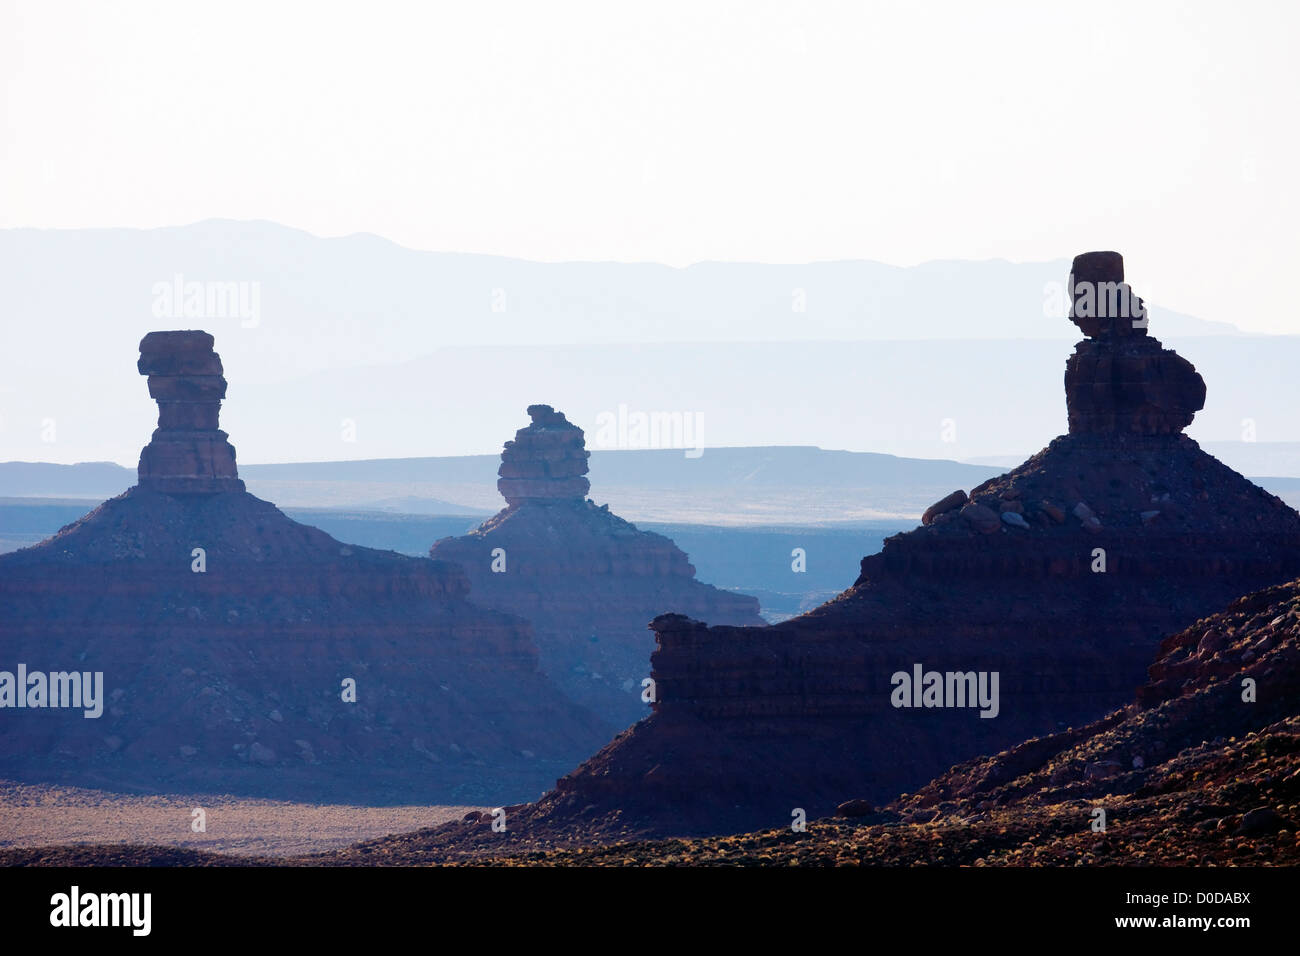 Valley of The Gods, Southern Utah - Stock Image